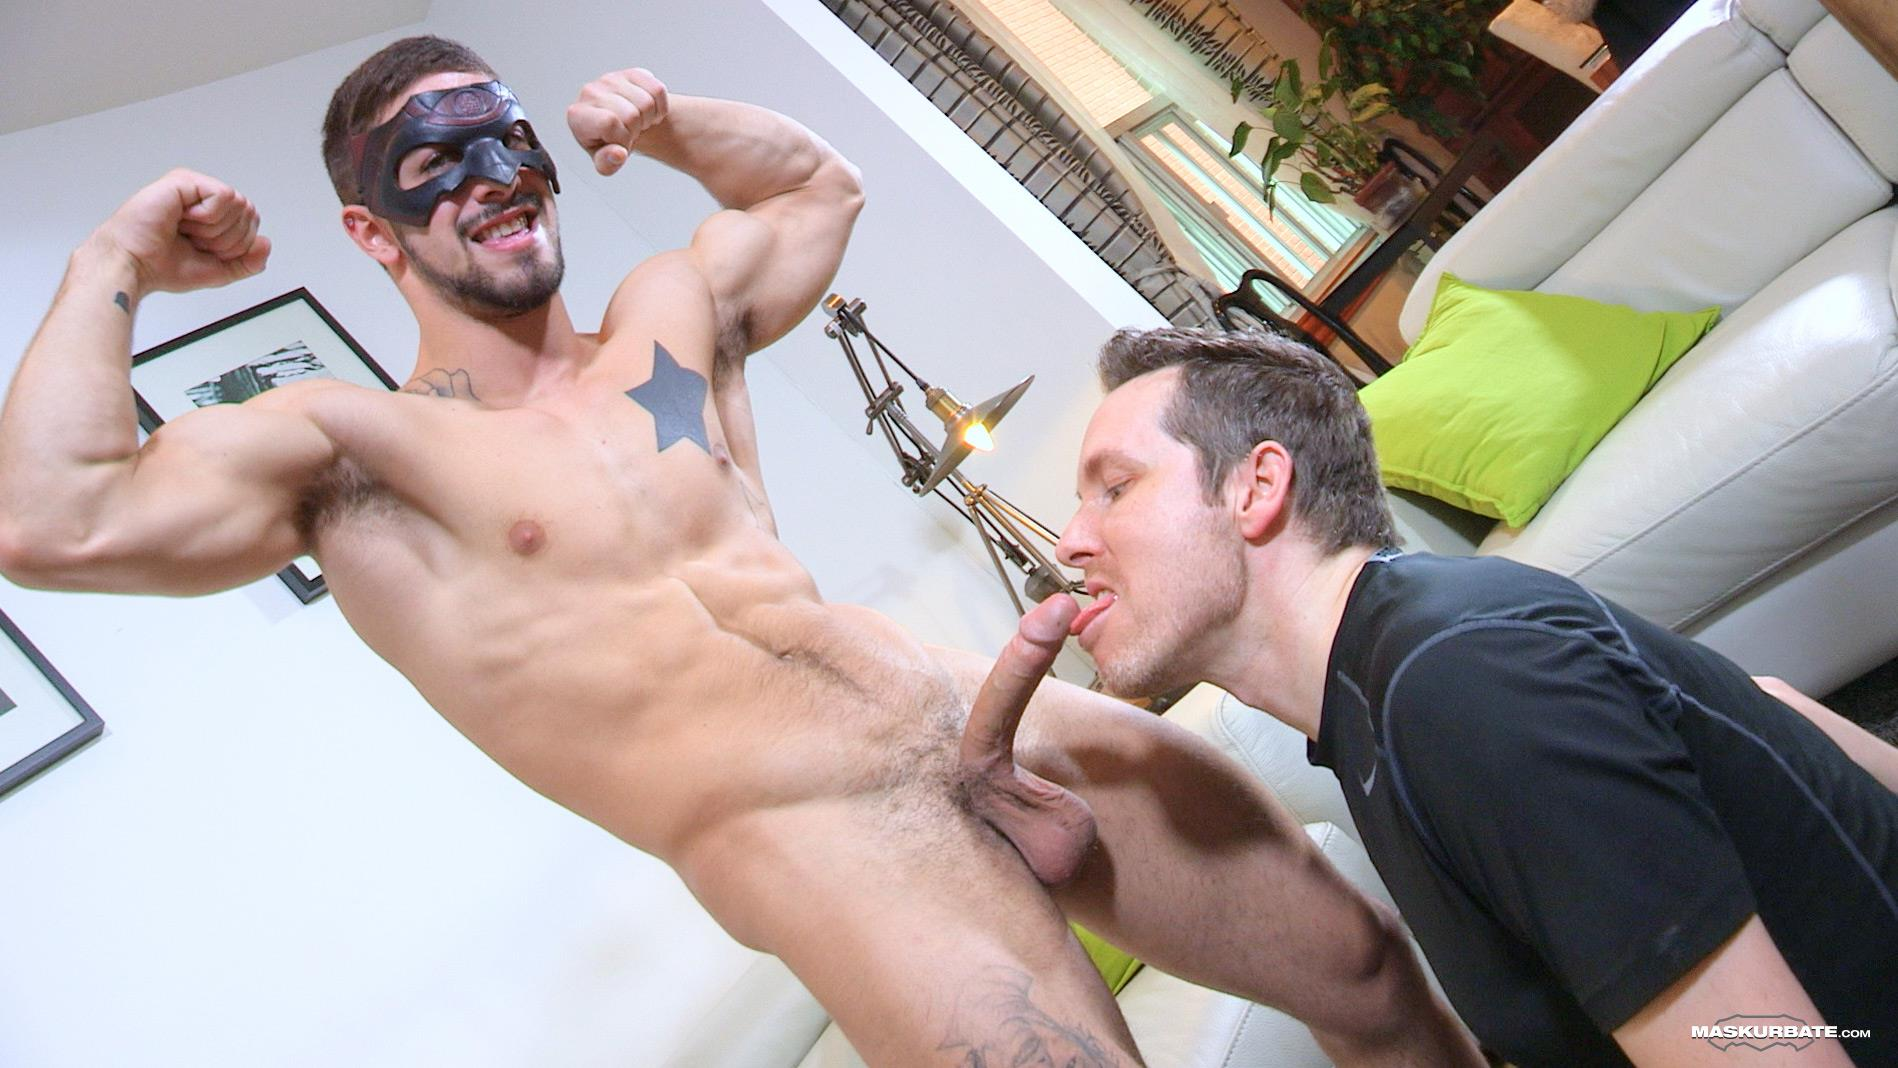 Maskurbate Carl Straight Muscle Jock With A Big Cock Amateur Gay Porn 11